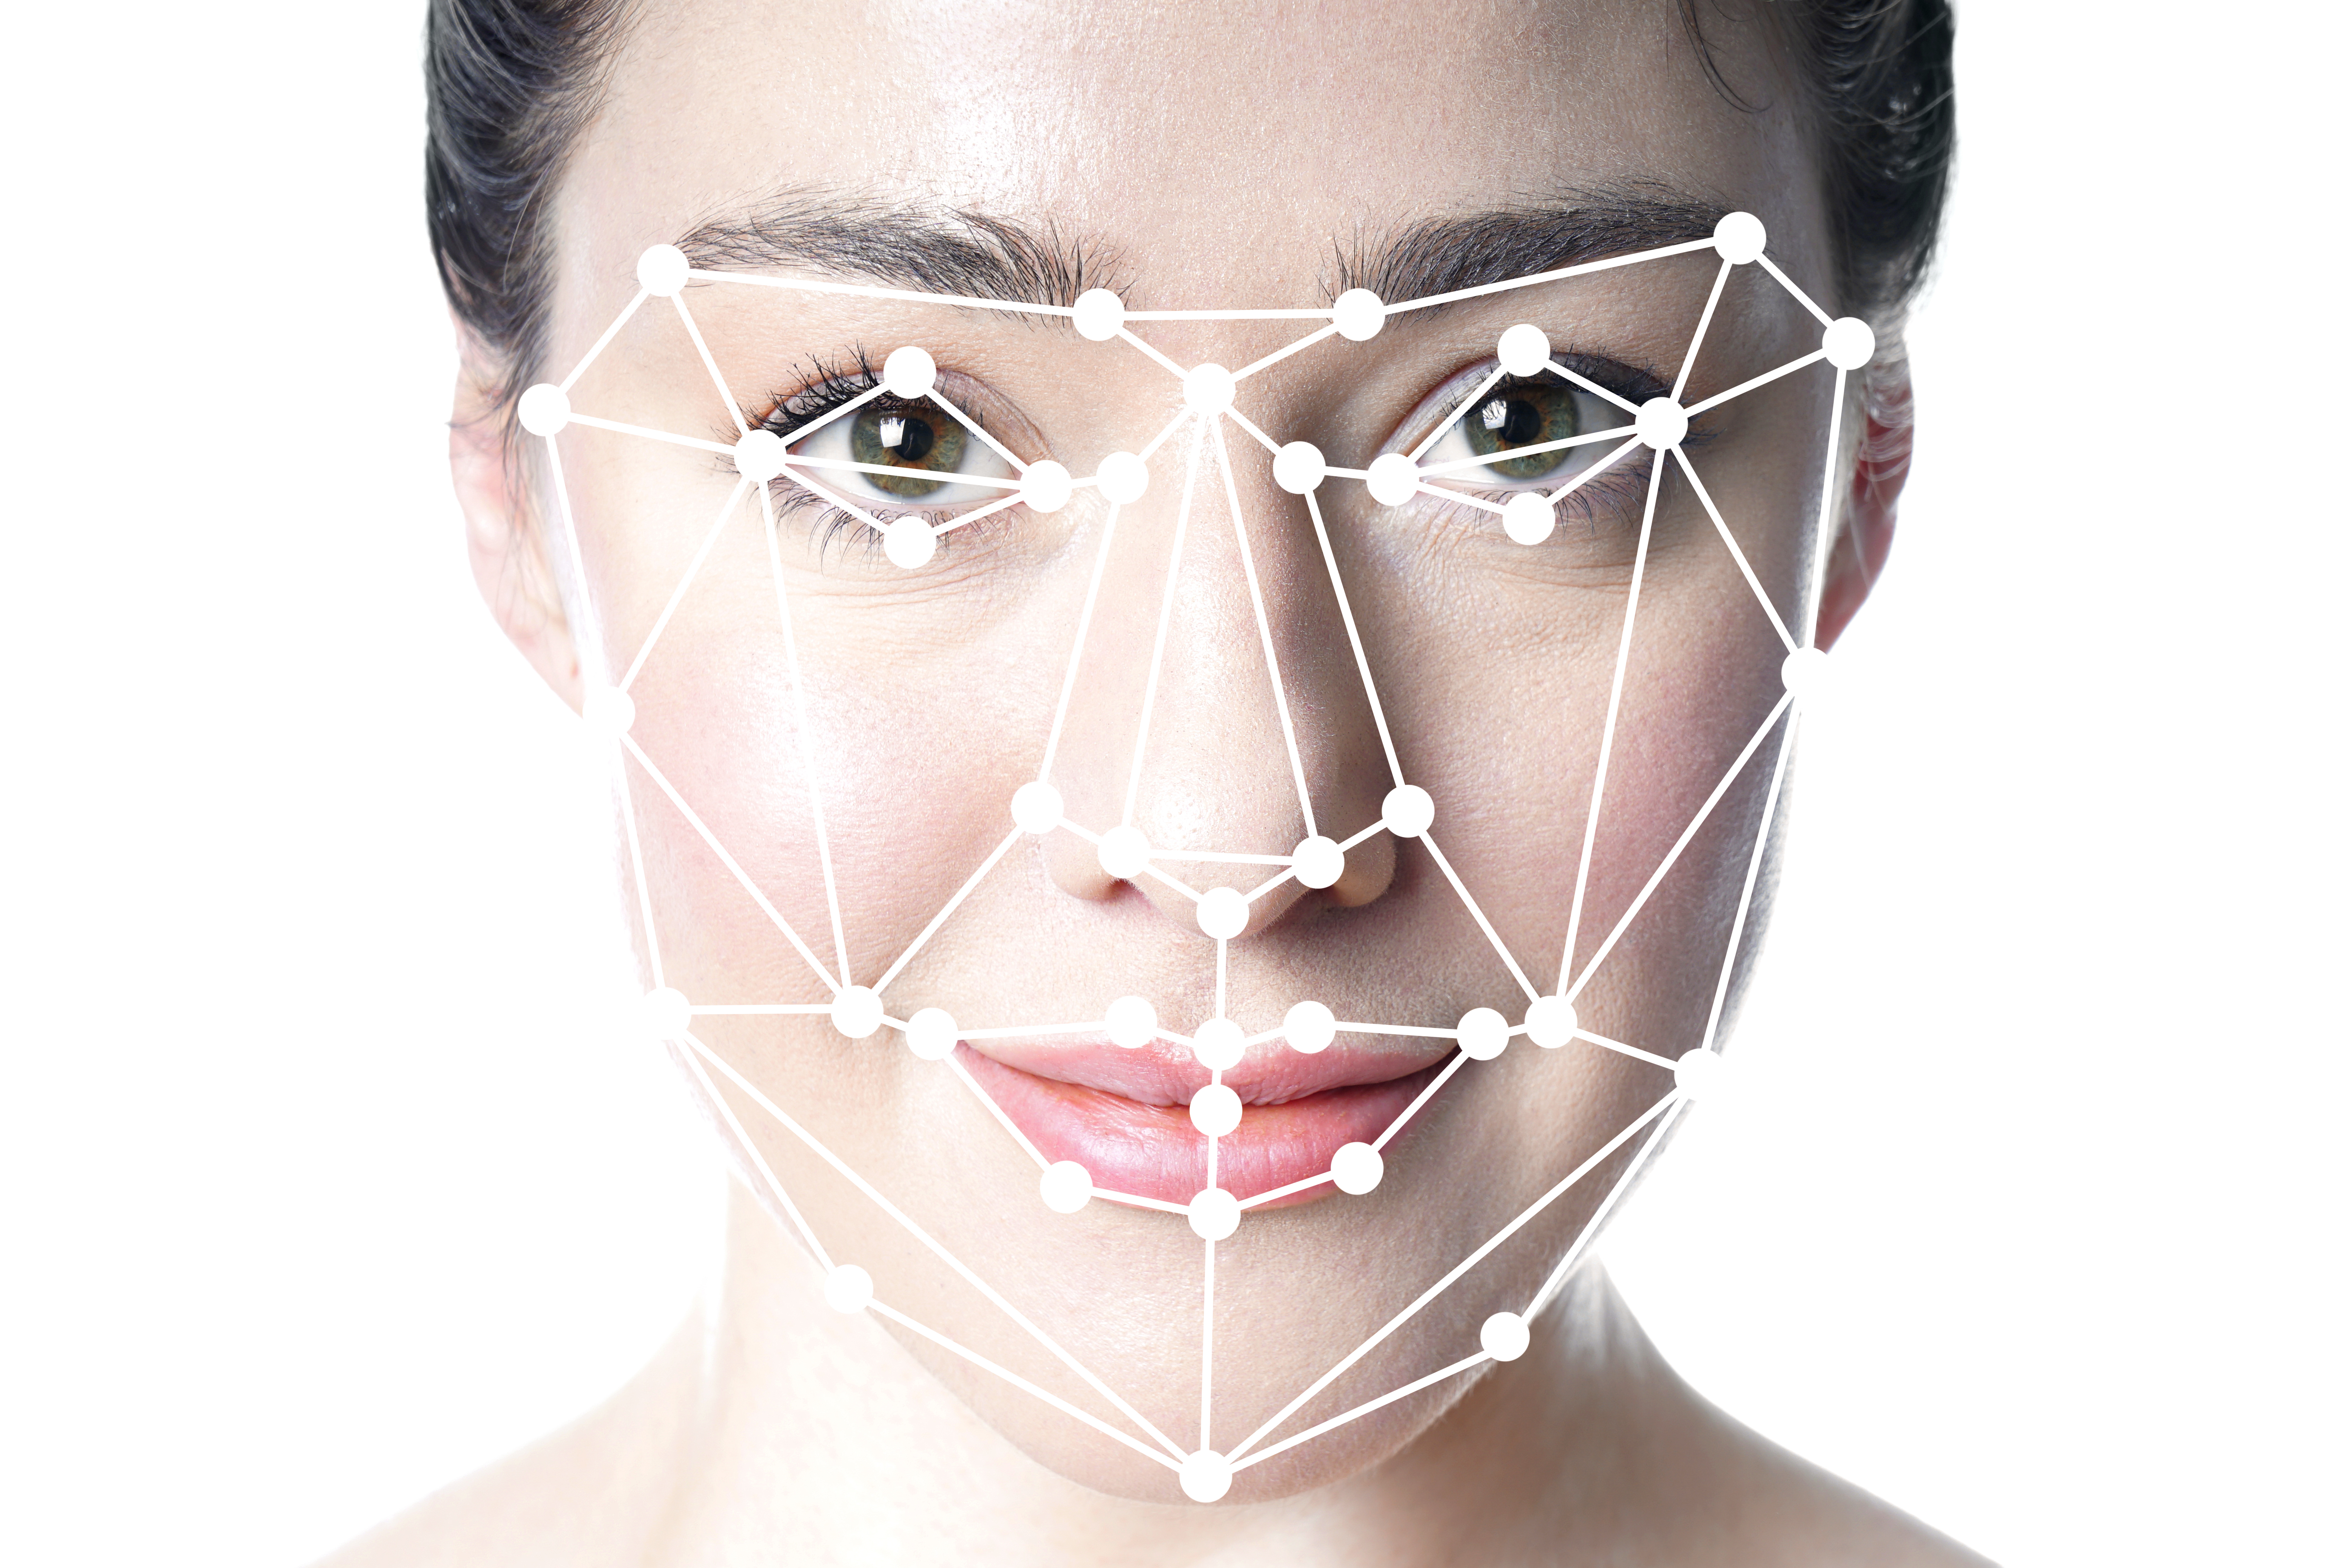 Facial recognition ipo stocks